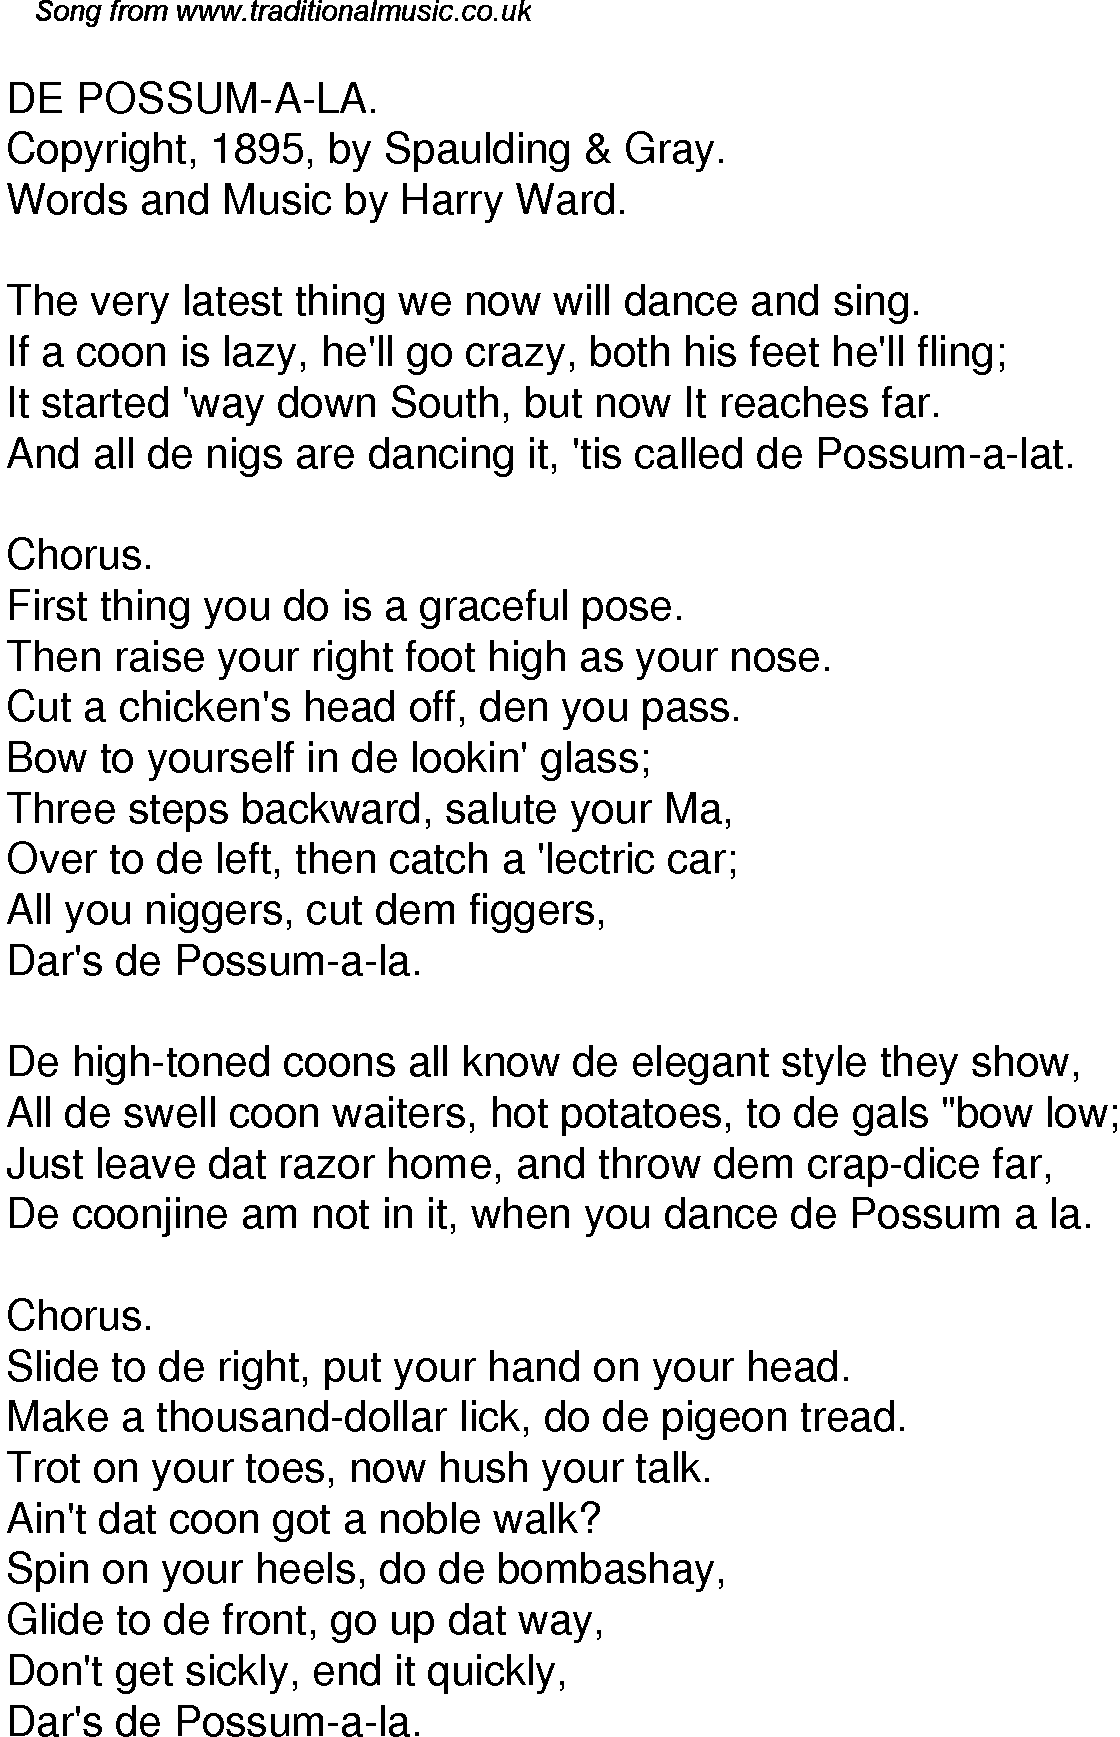 Lick you from your head lyrics